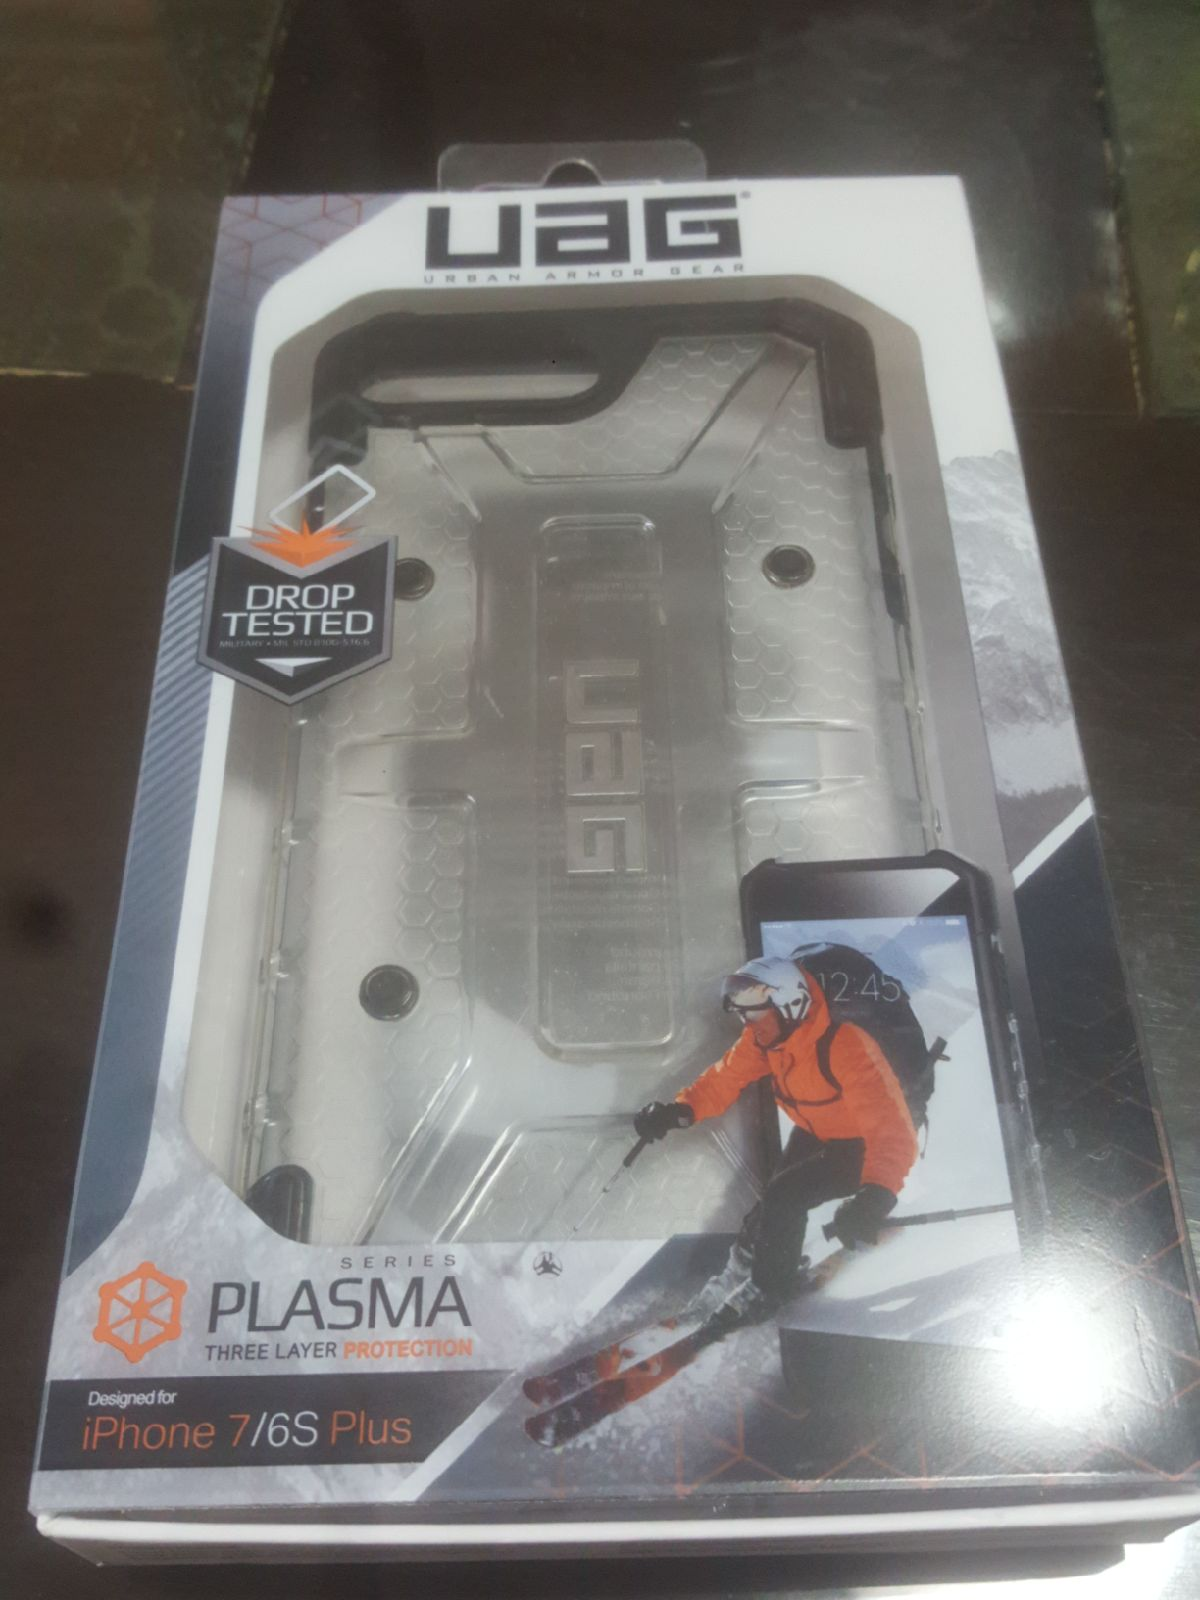 UAG Iphone 7/6s plus case